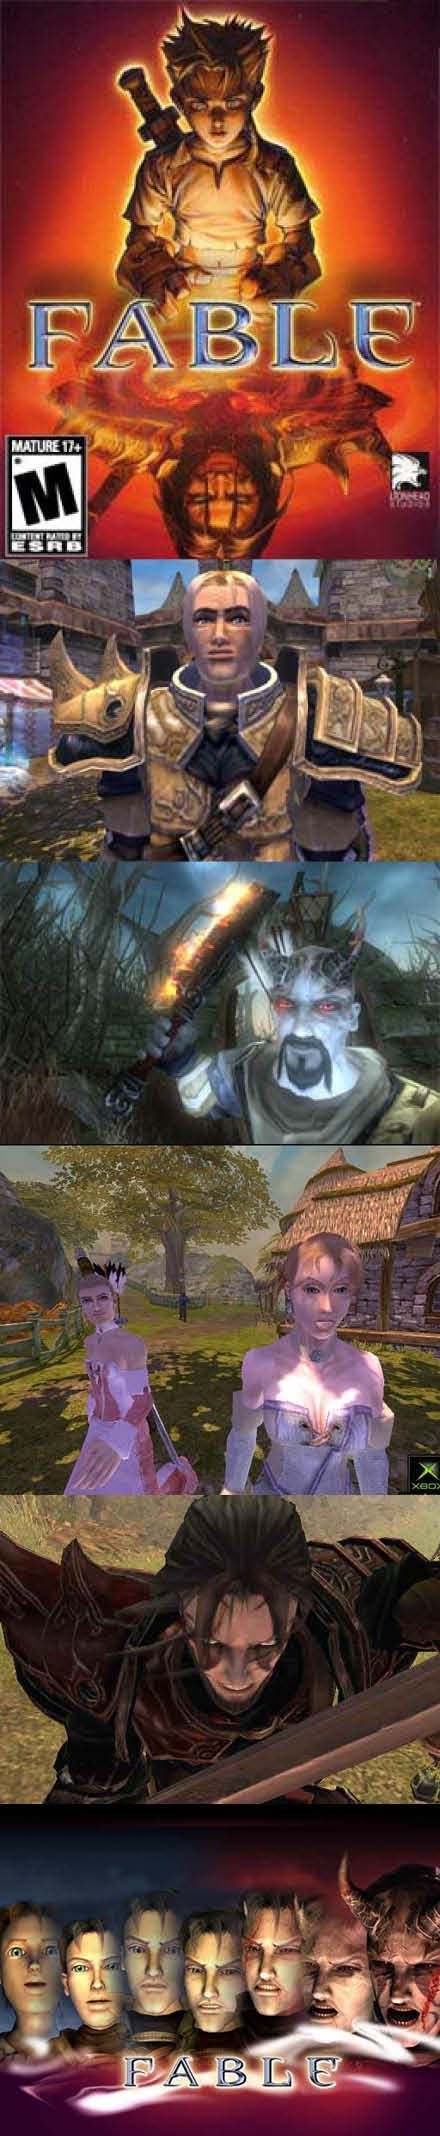 #Retro #RPG #Gamer You can still get the original #Fable on #Xbox #Arcade! http://www.levelgamingground.com/fable-review.html